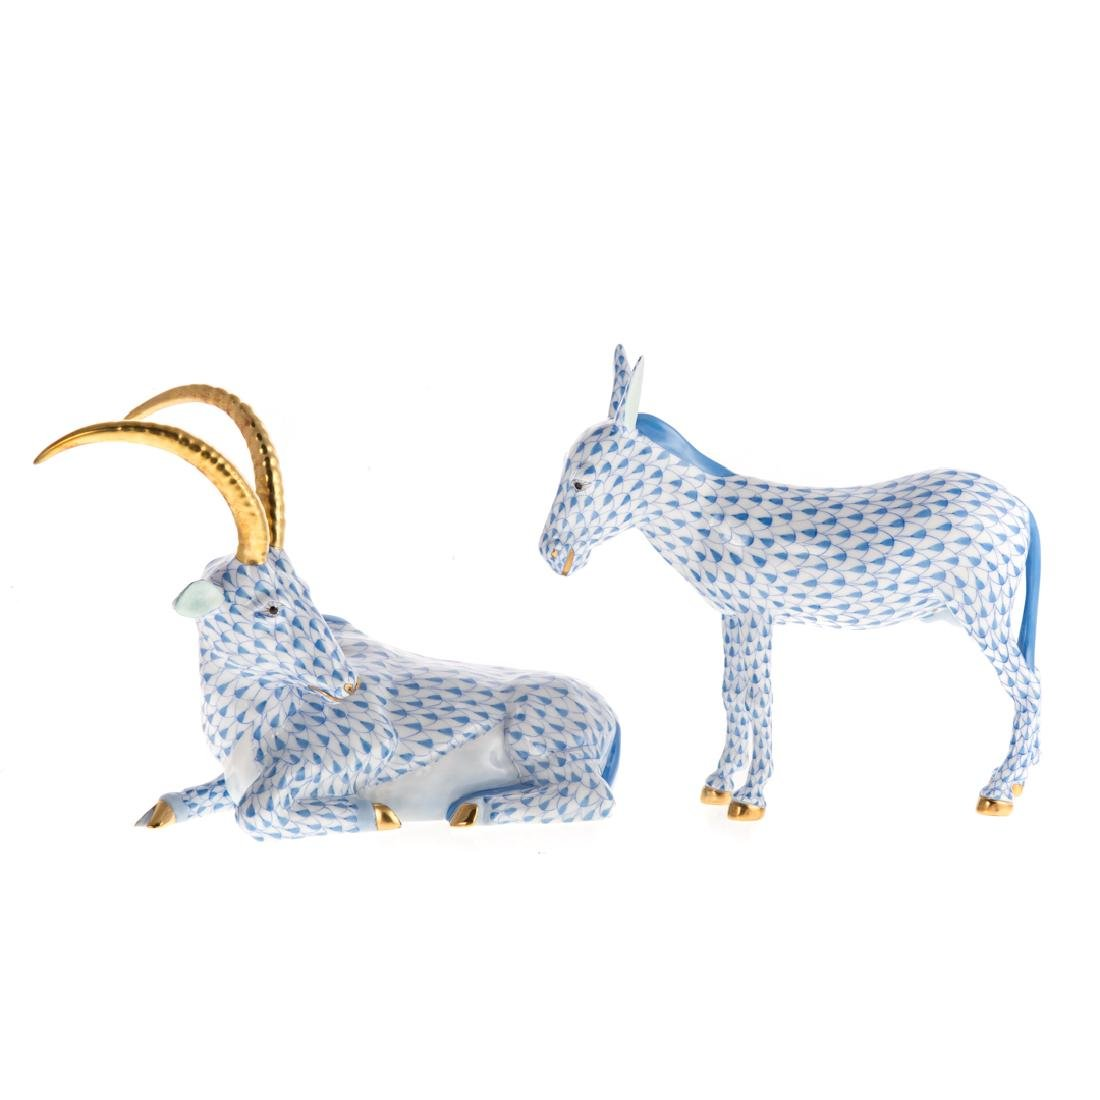 Two large Herend porcelain animals